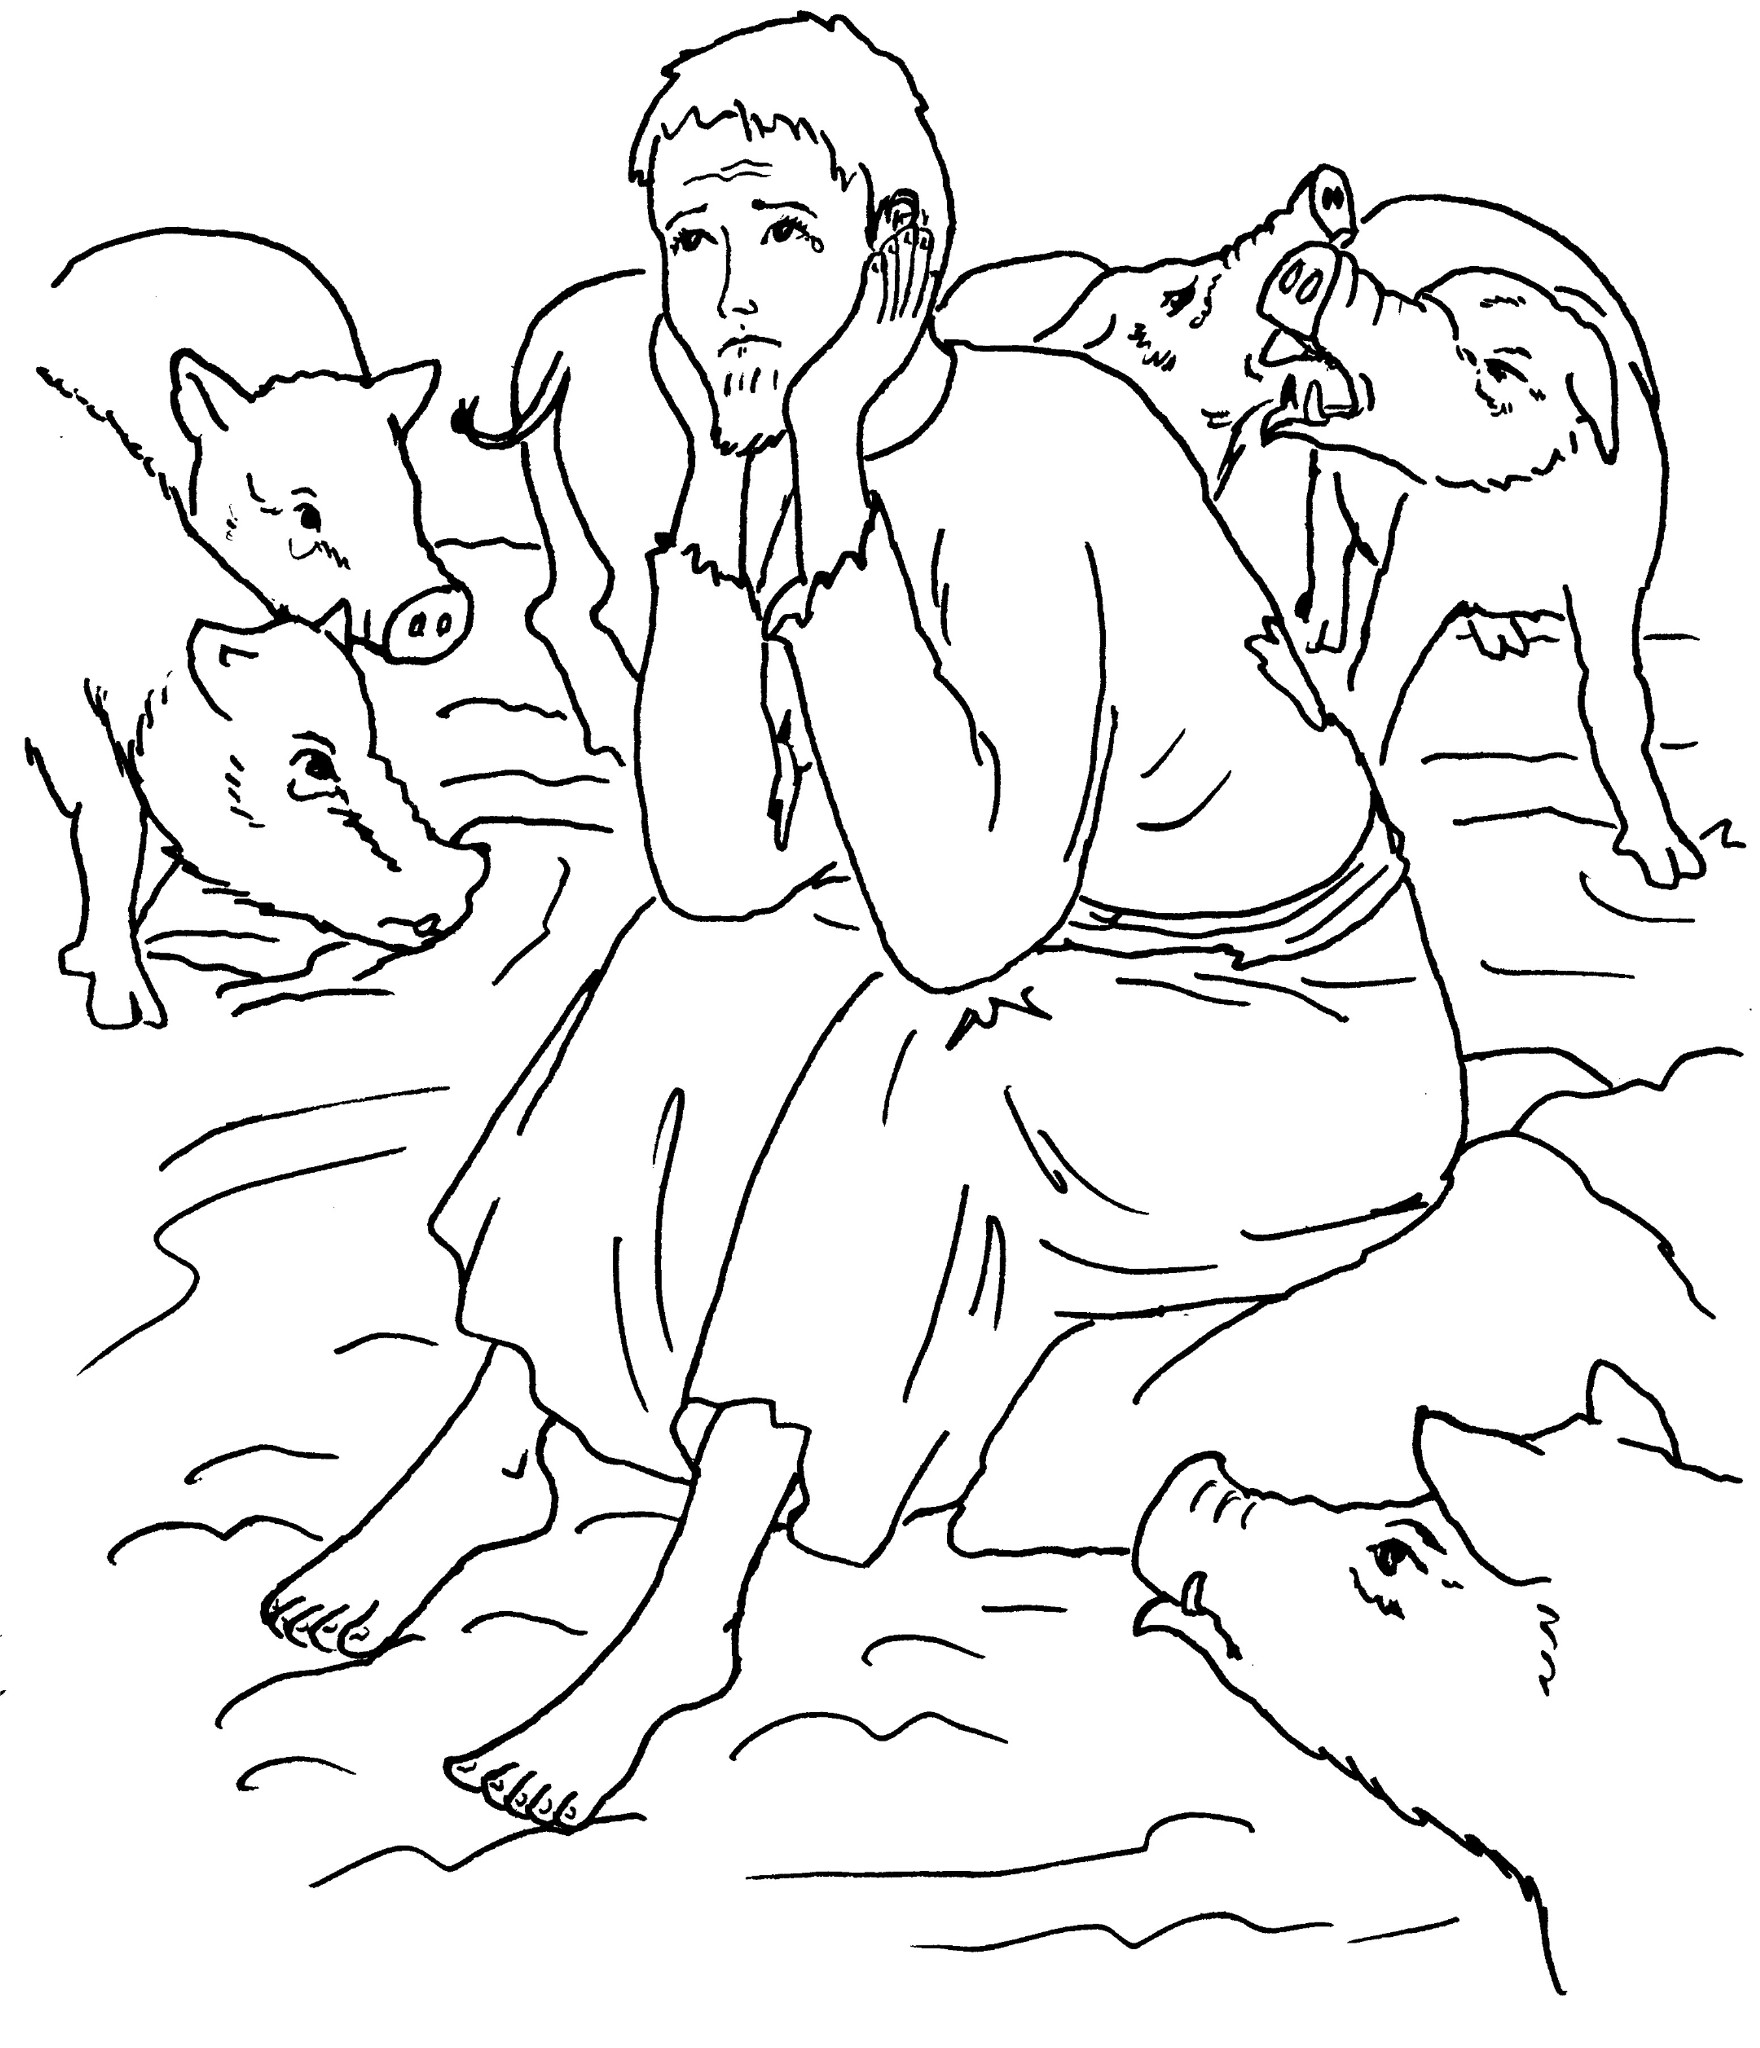 children's bible coloring pages - BRPI parab luc 15